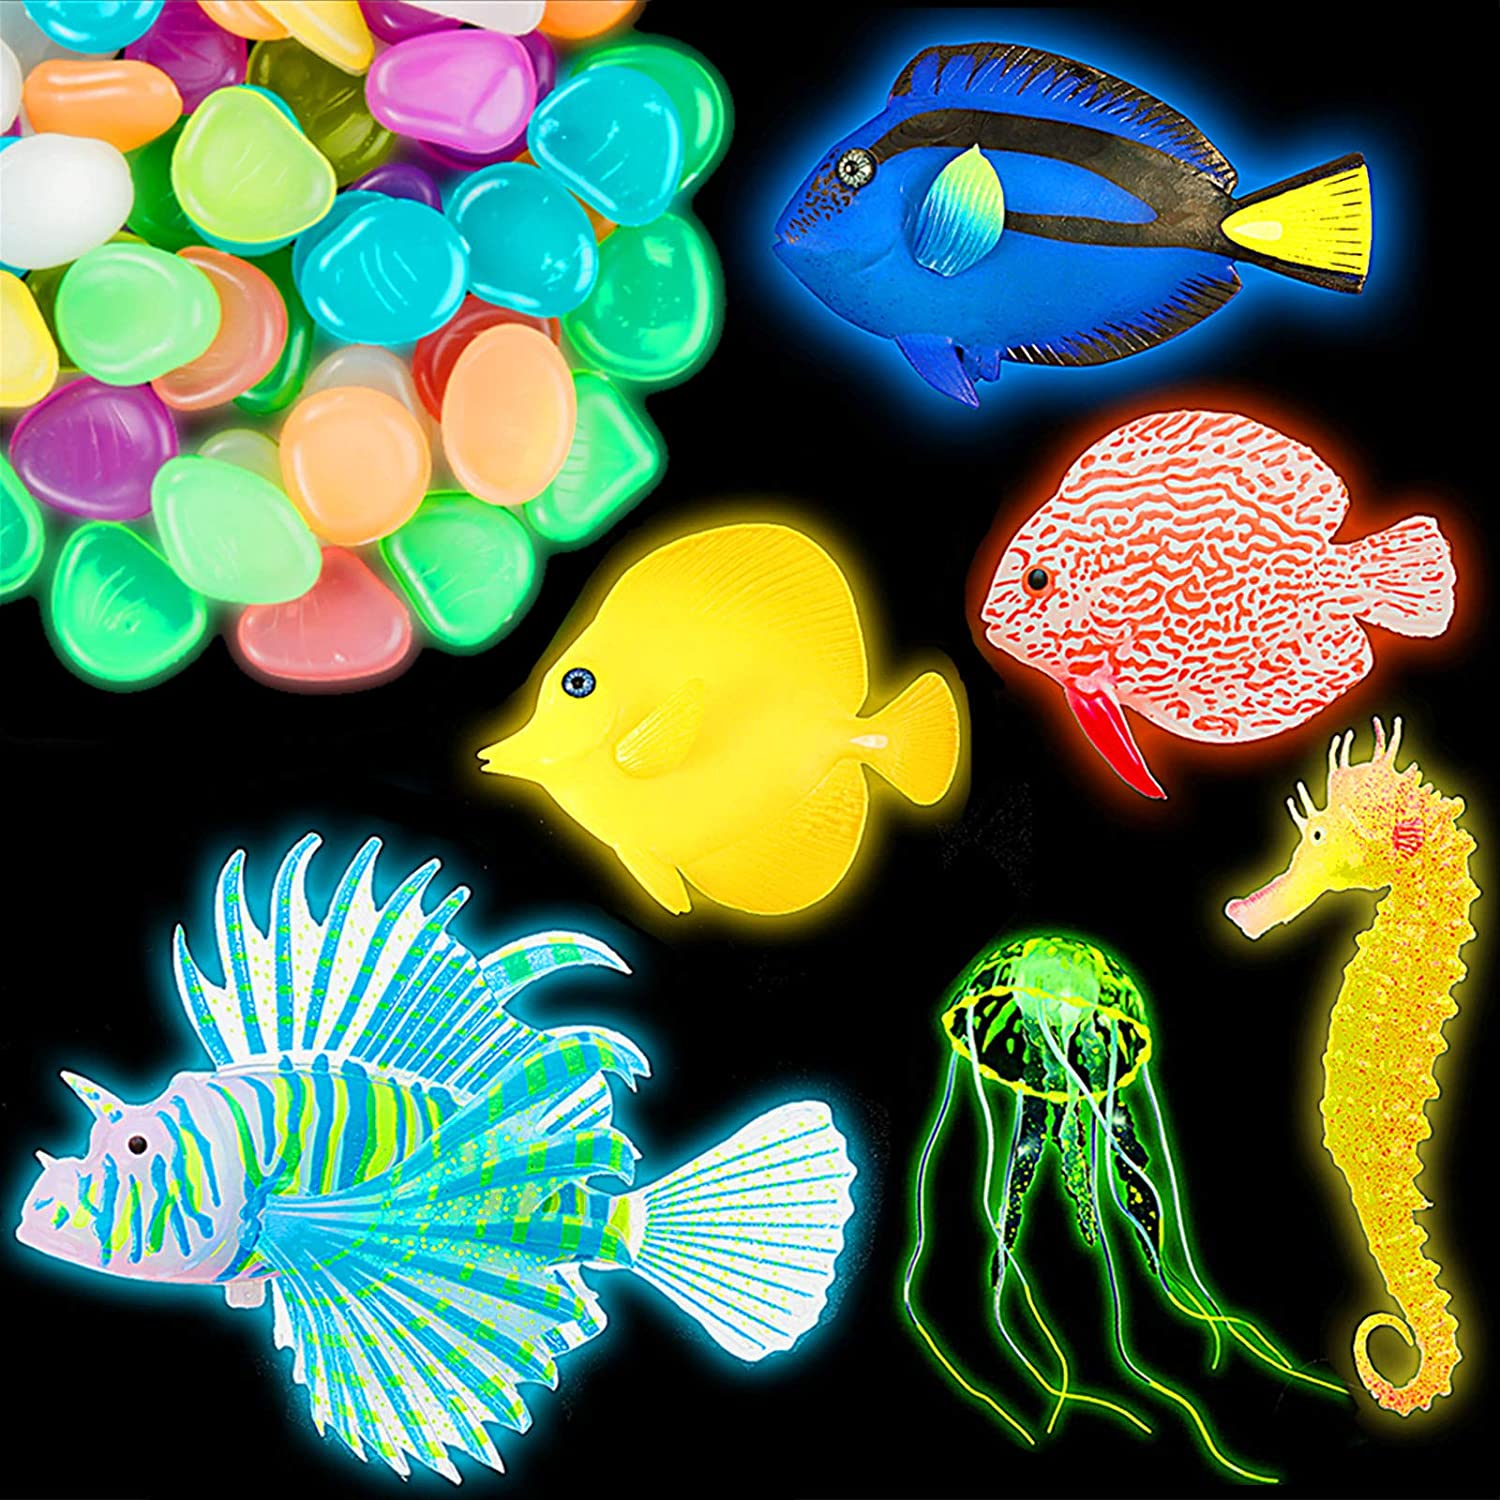 56 Pieces Artificial Glowing Fish Set Include 5 Styles Colorful Fake Fishes 1 Piece Fake Jellyfish 50 Pieces Luminous Stones Glowing Effect Aquarium Decor Floating Ornament for Fish Tank Decoration